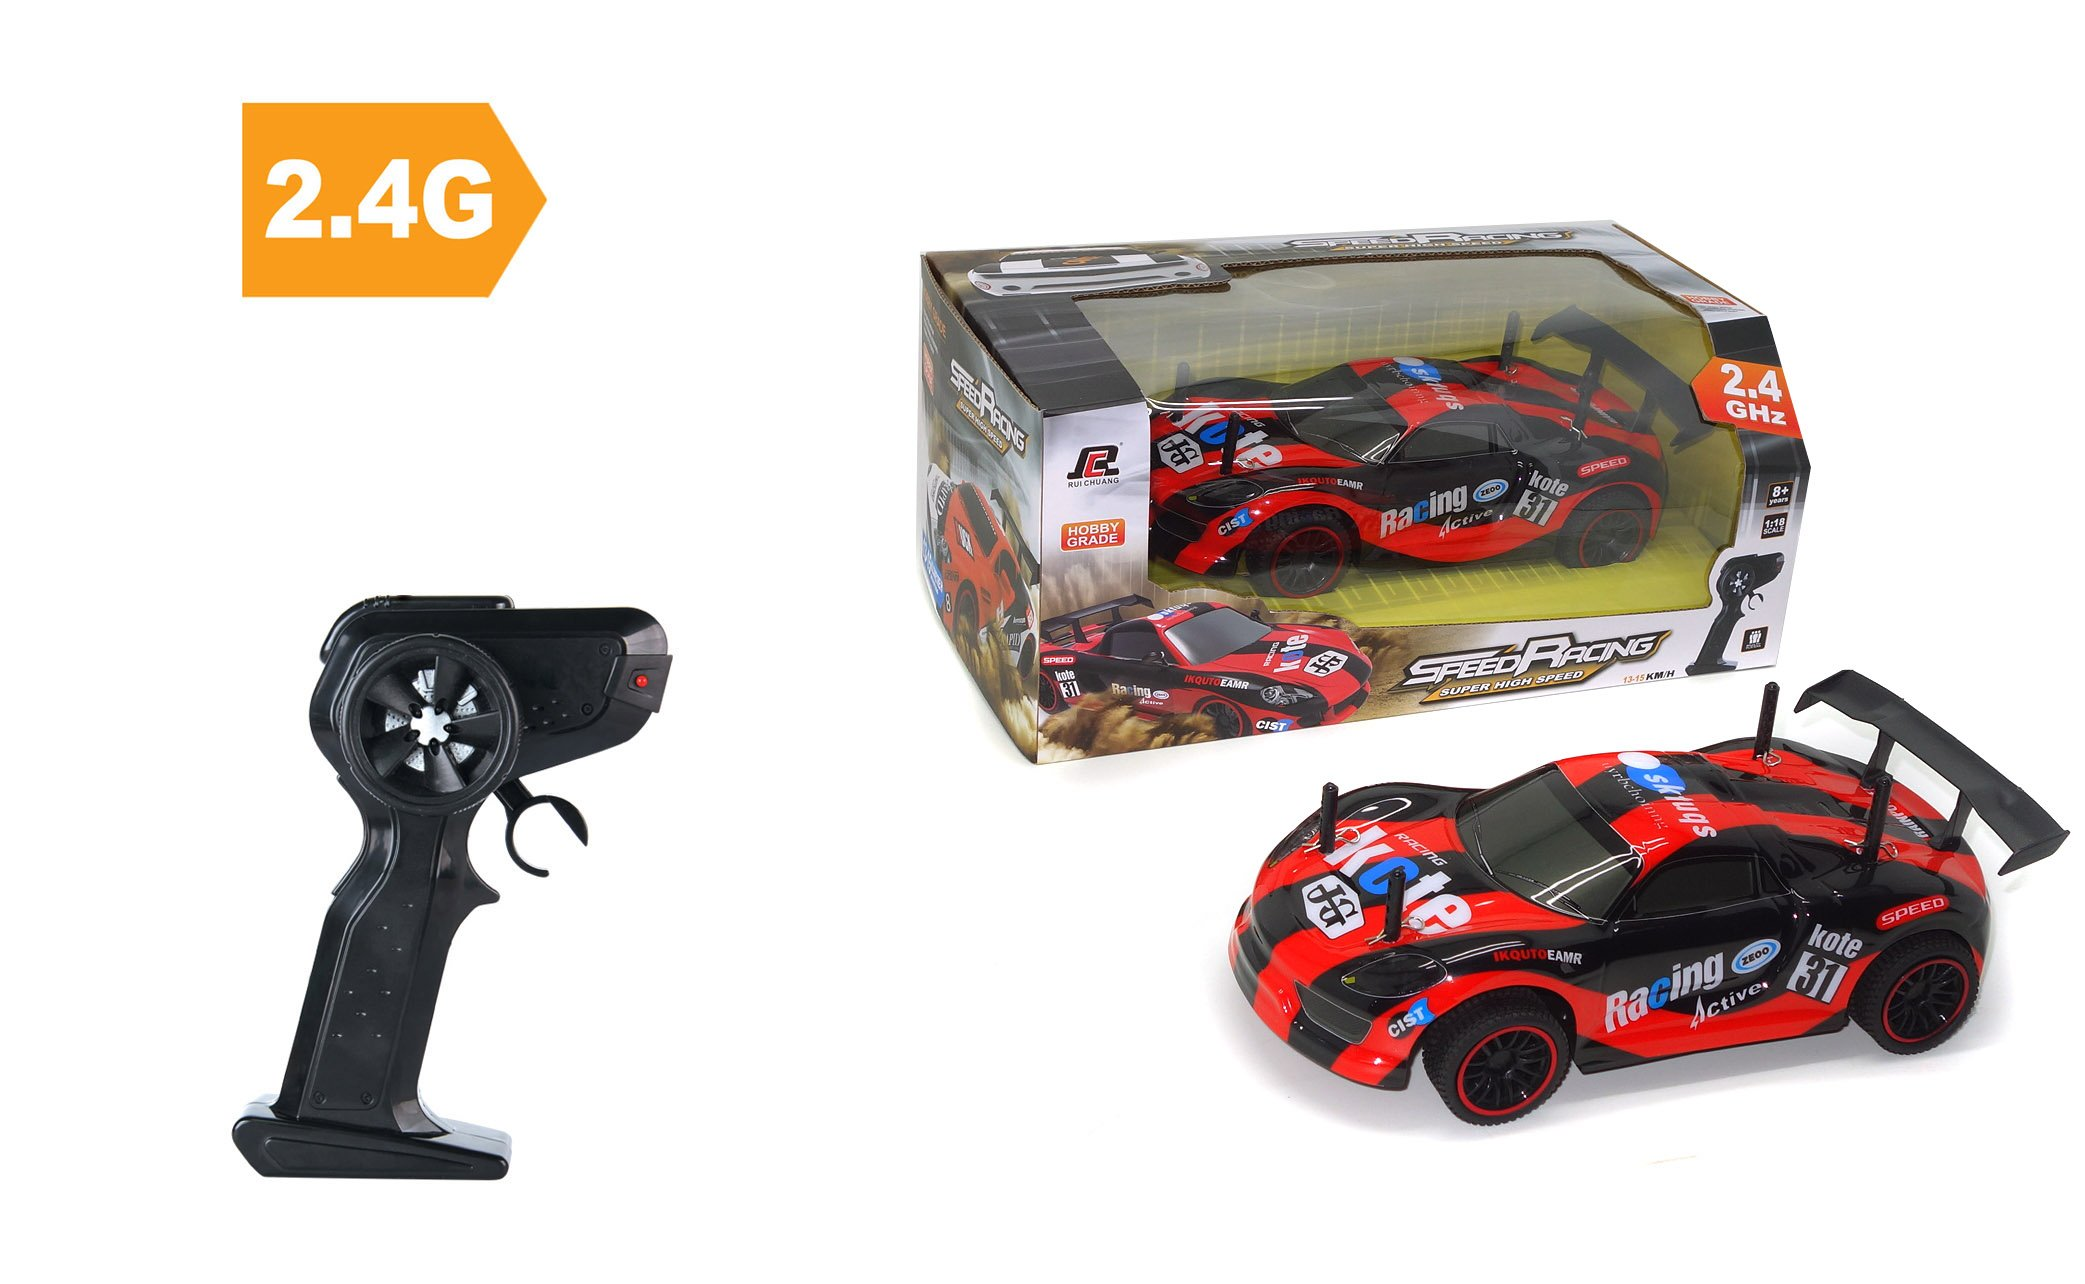 Coche rc carretera 1/18 speed racing referencia QY1810 QY1810